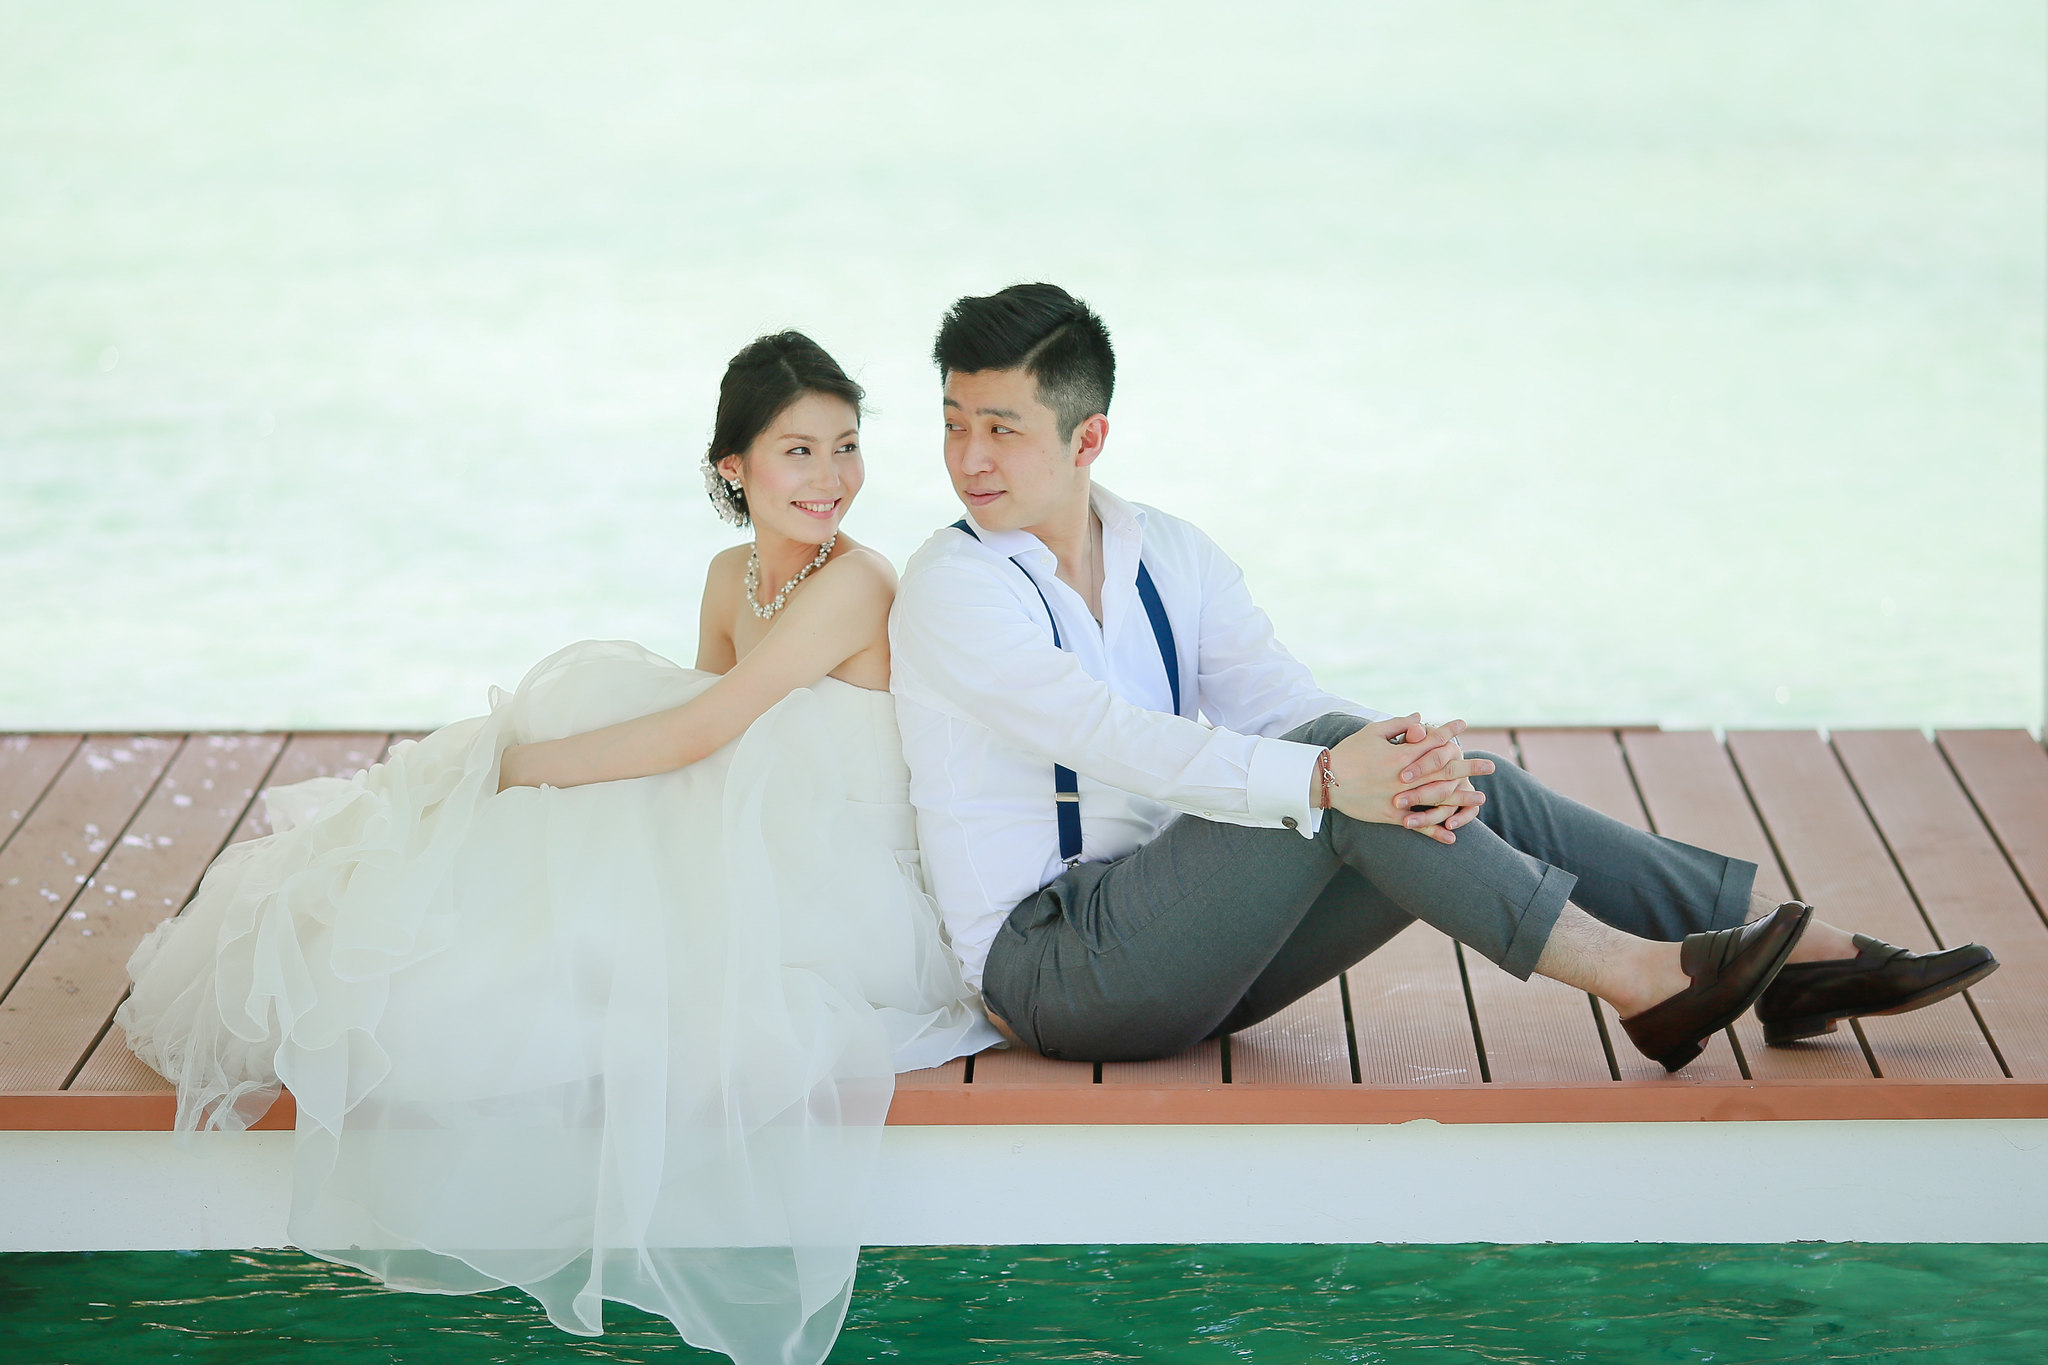 Cebu Beach Wedding, Cebu Wedding Packages